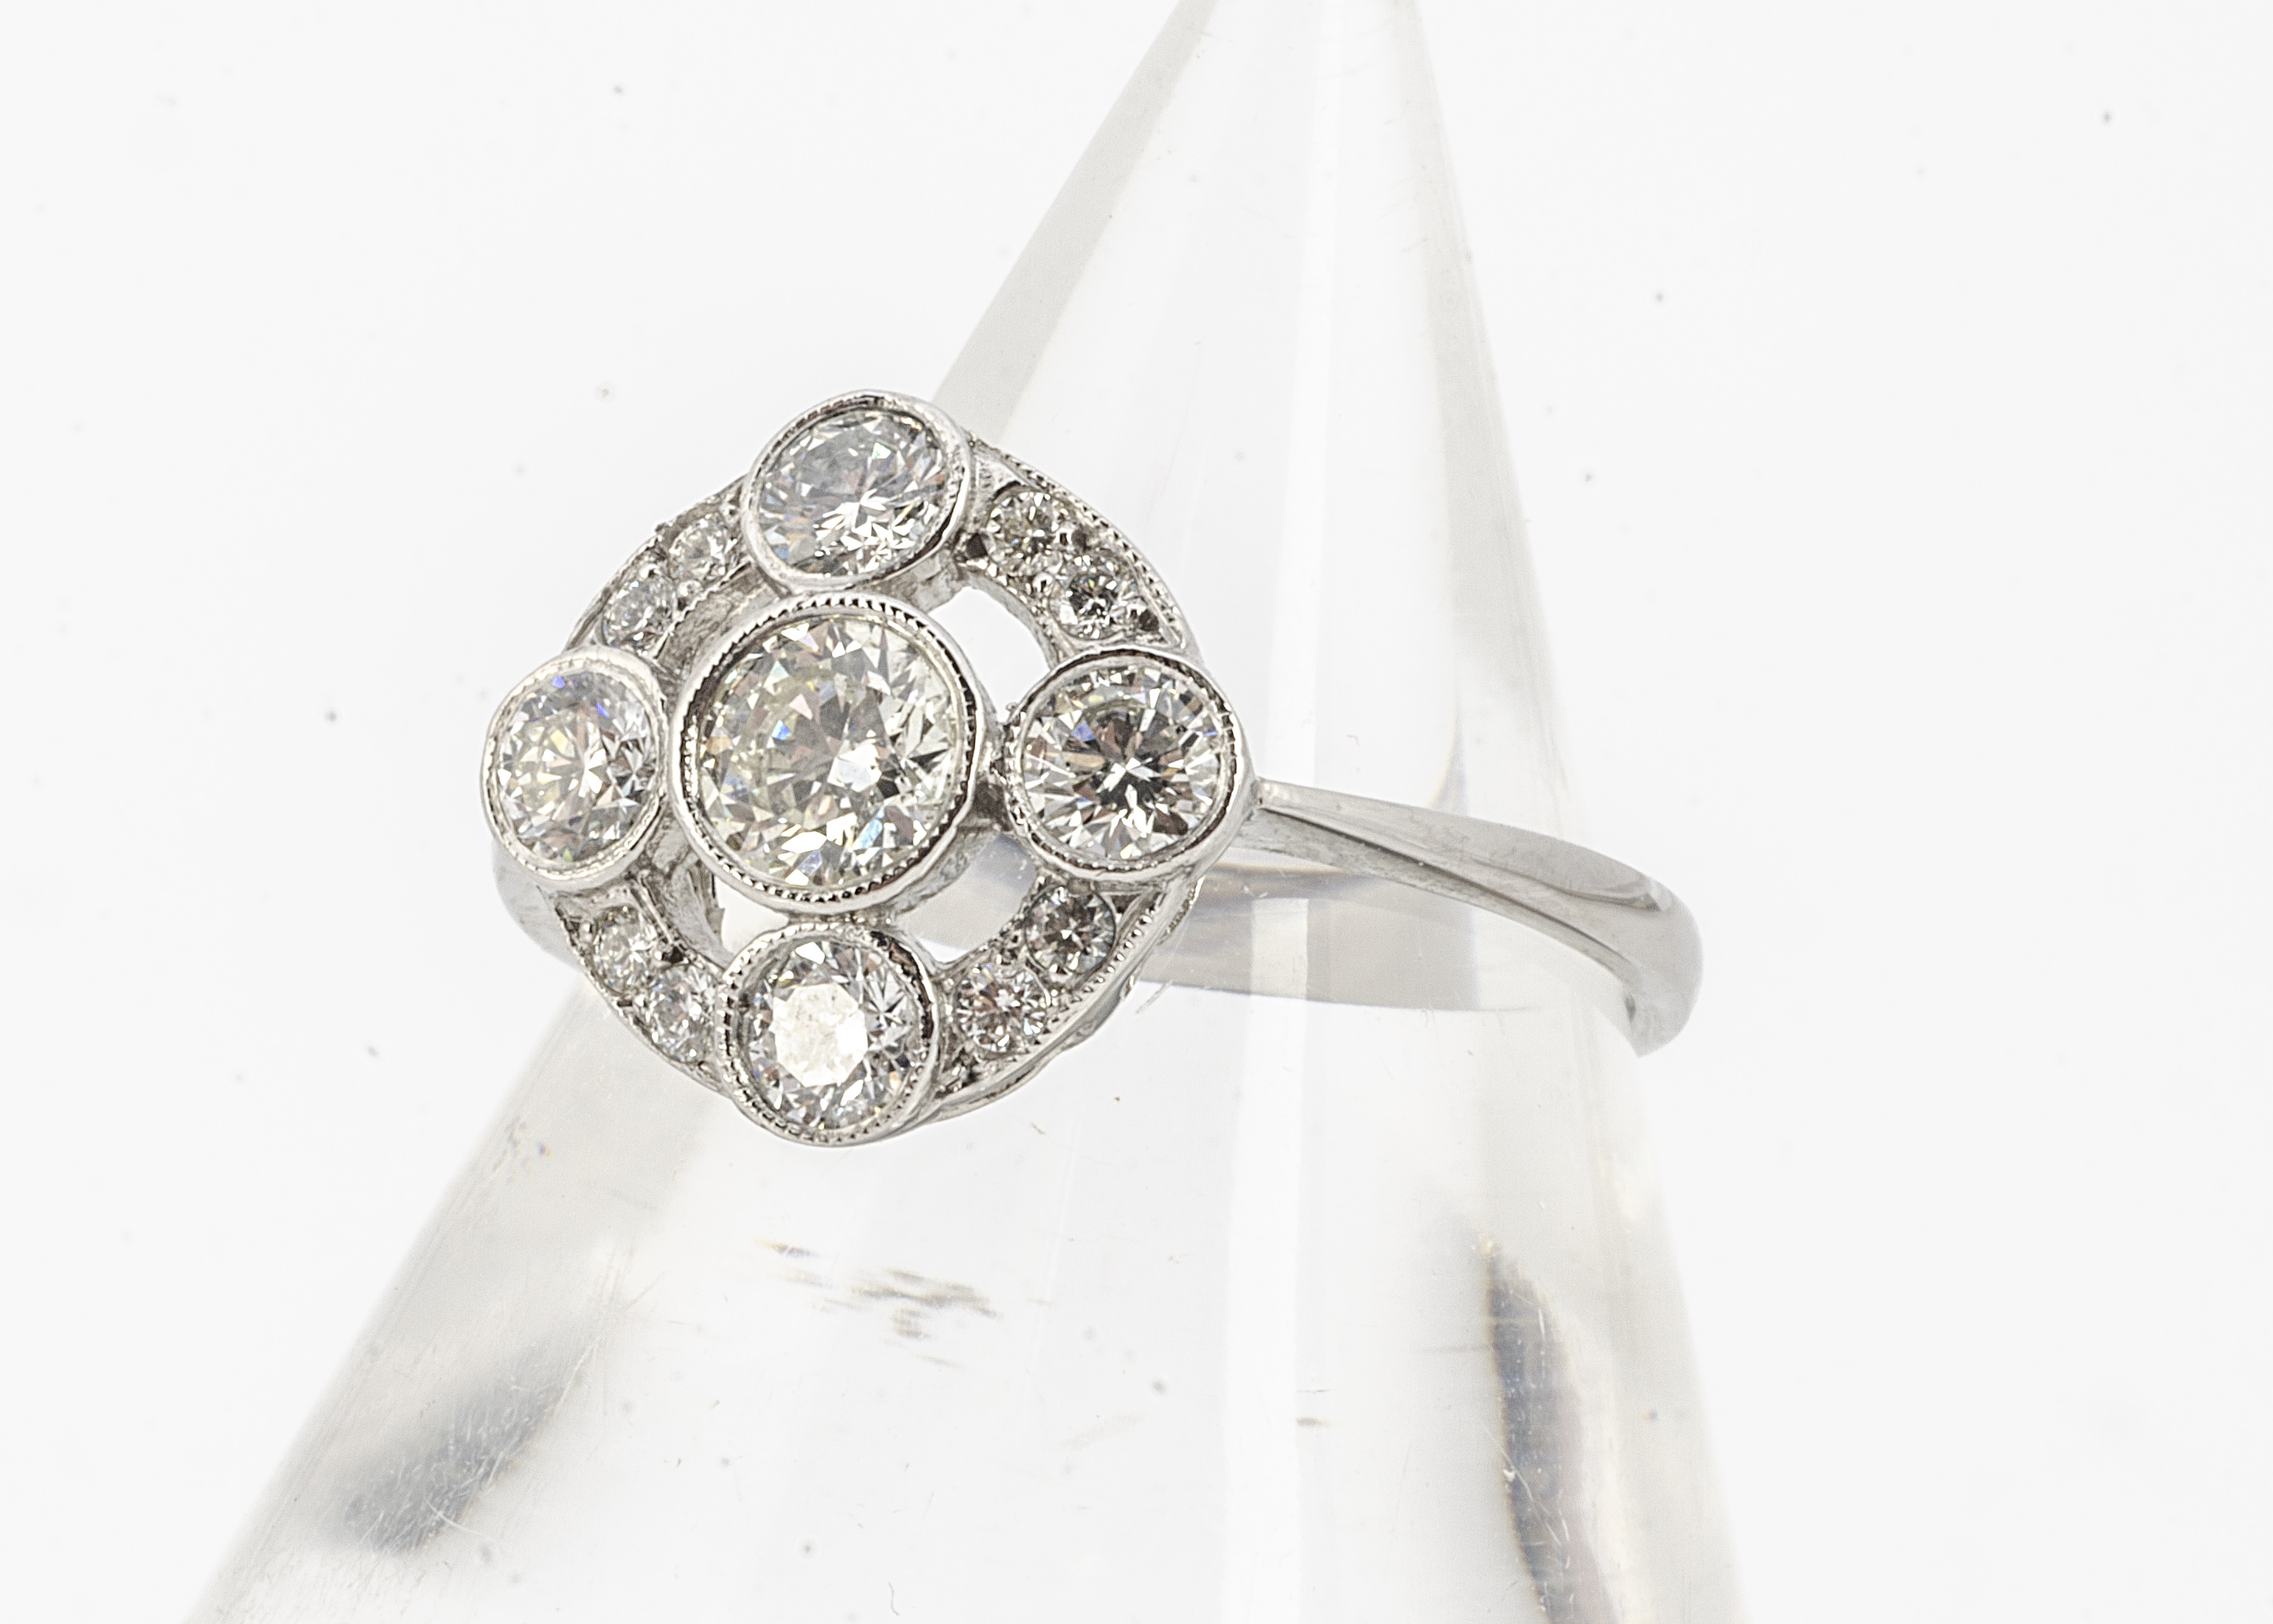 An Edwardian style diamond target ring, all in white metal stamped PLAT, brilliant cuts in colette